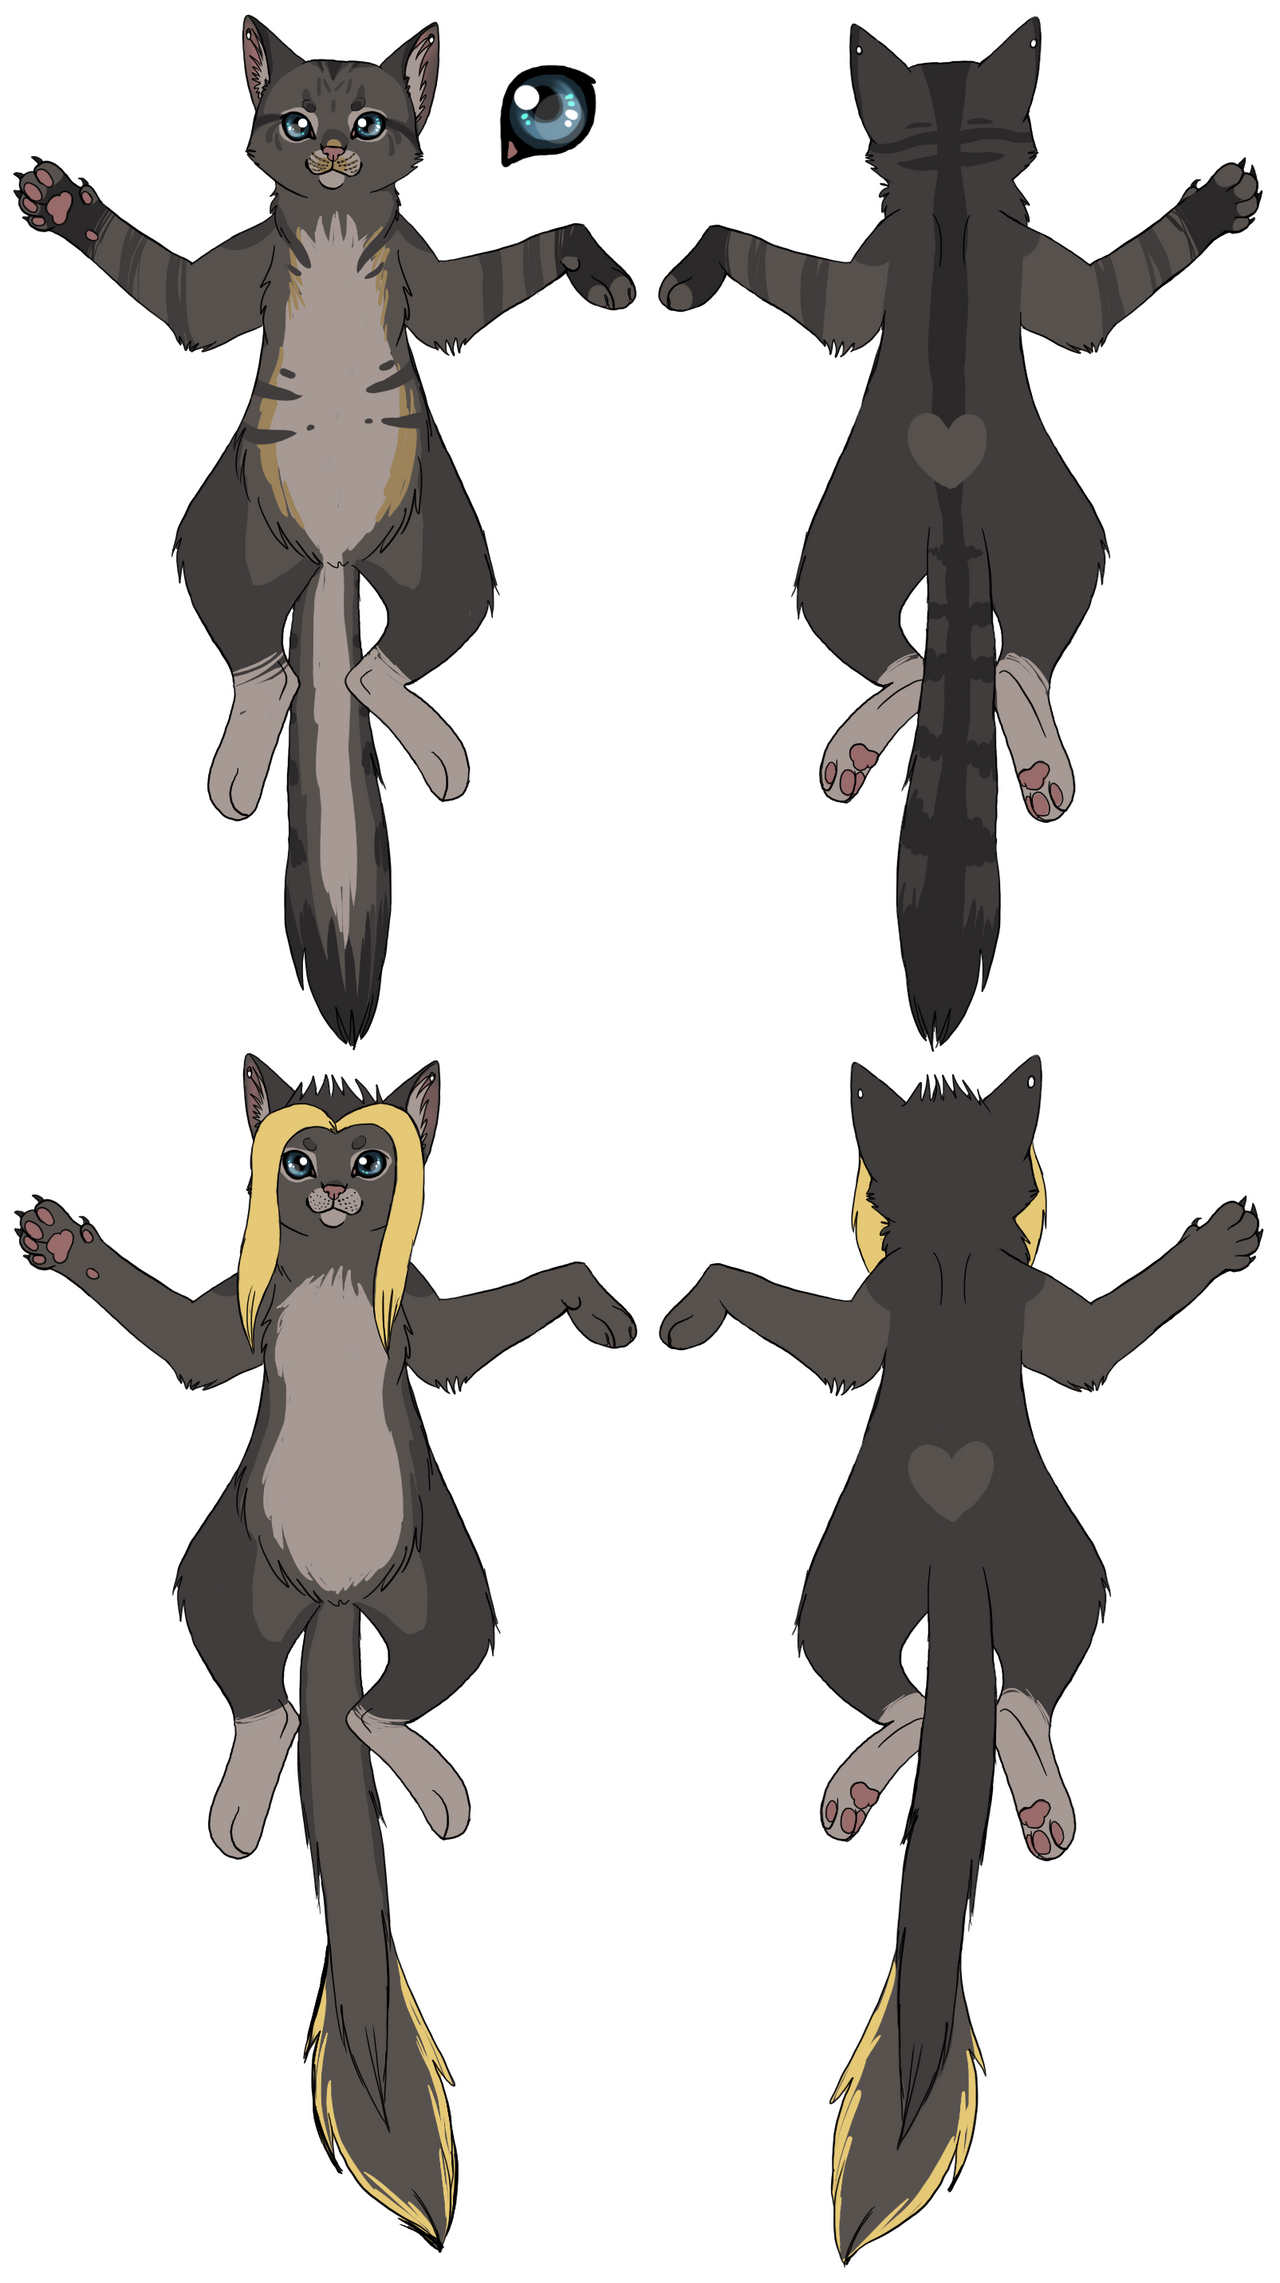 Angie Kitty Ref sheet by BakaMichi